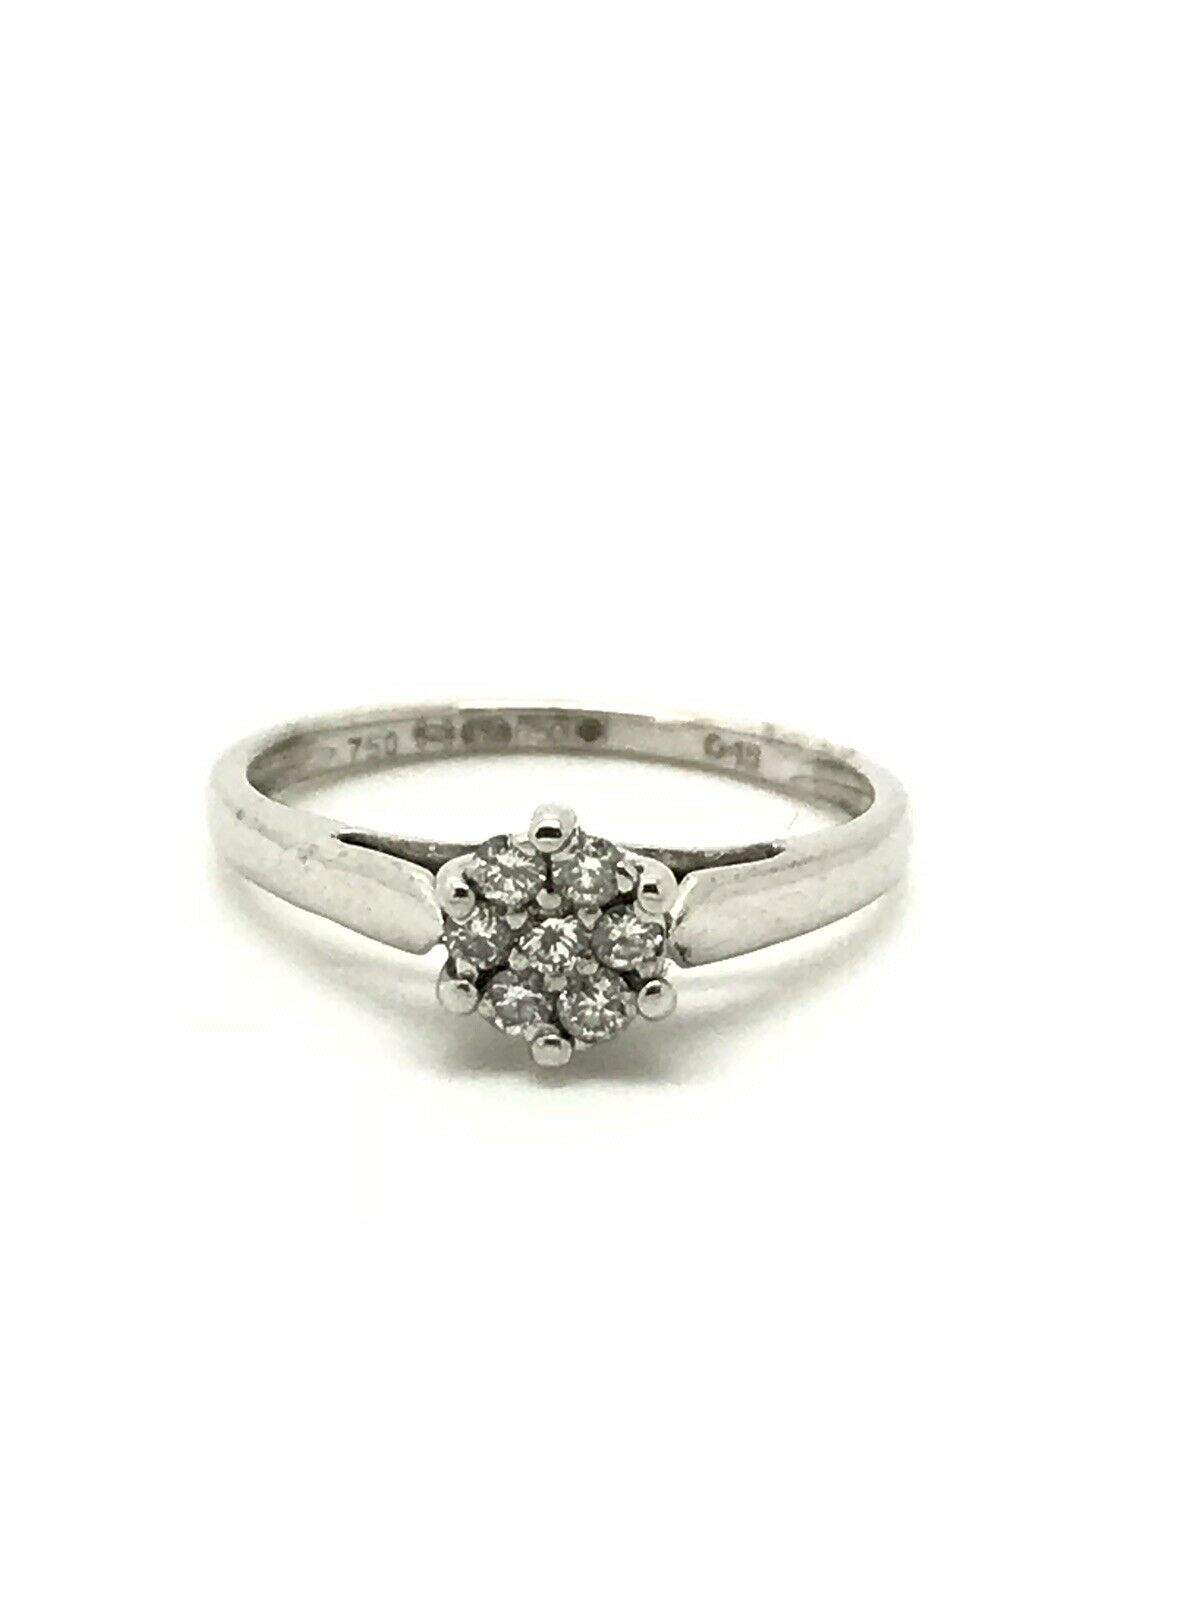 0.15ct Diamond Cluster Engagement Ring - 18ct White gold - Size J - 2.12g